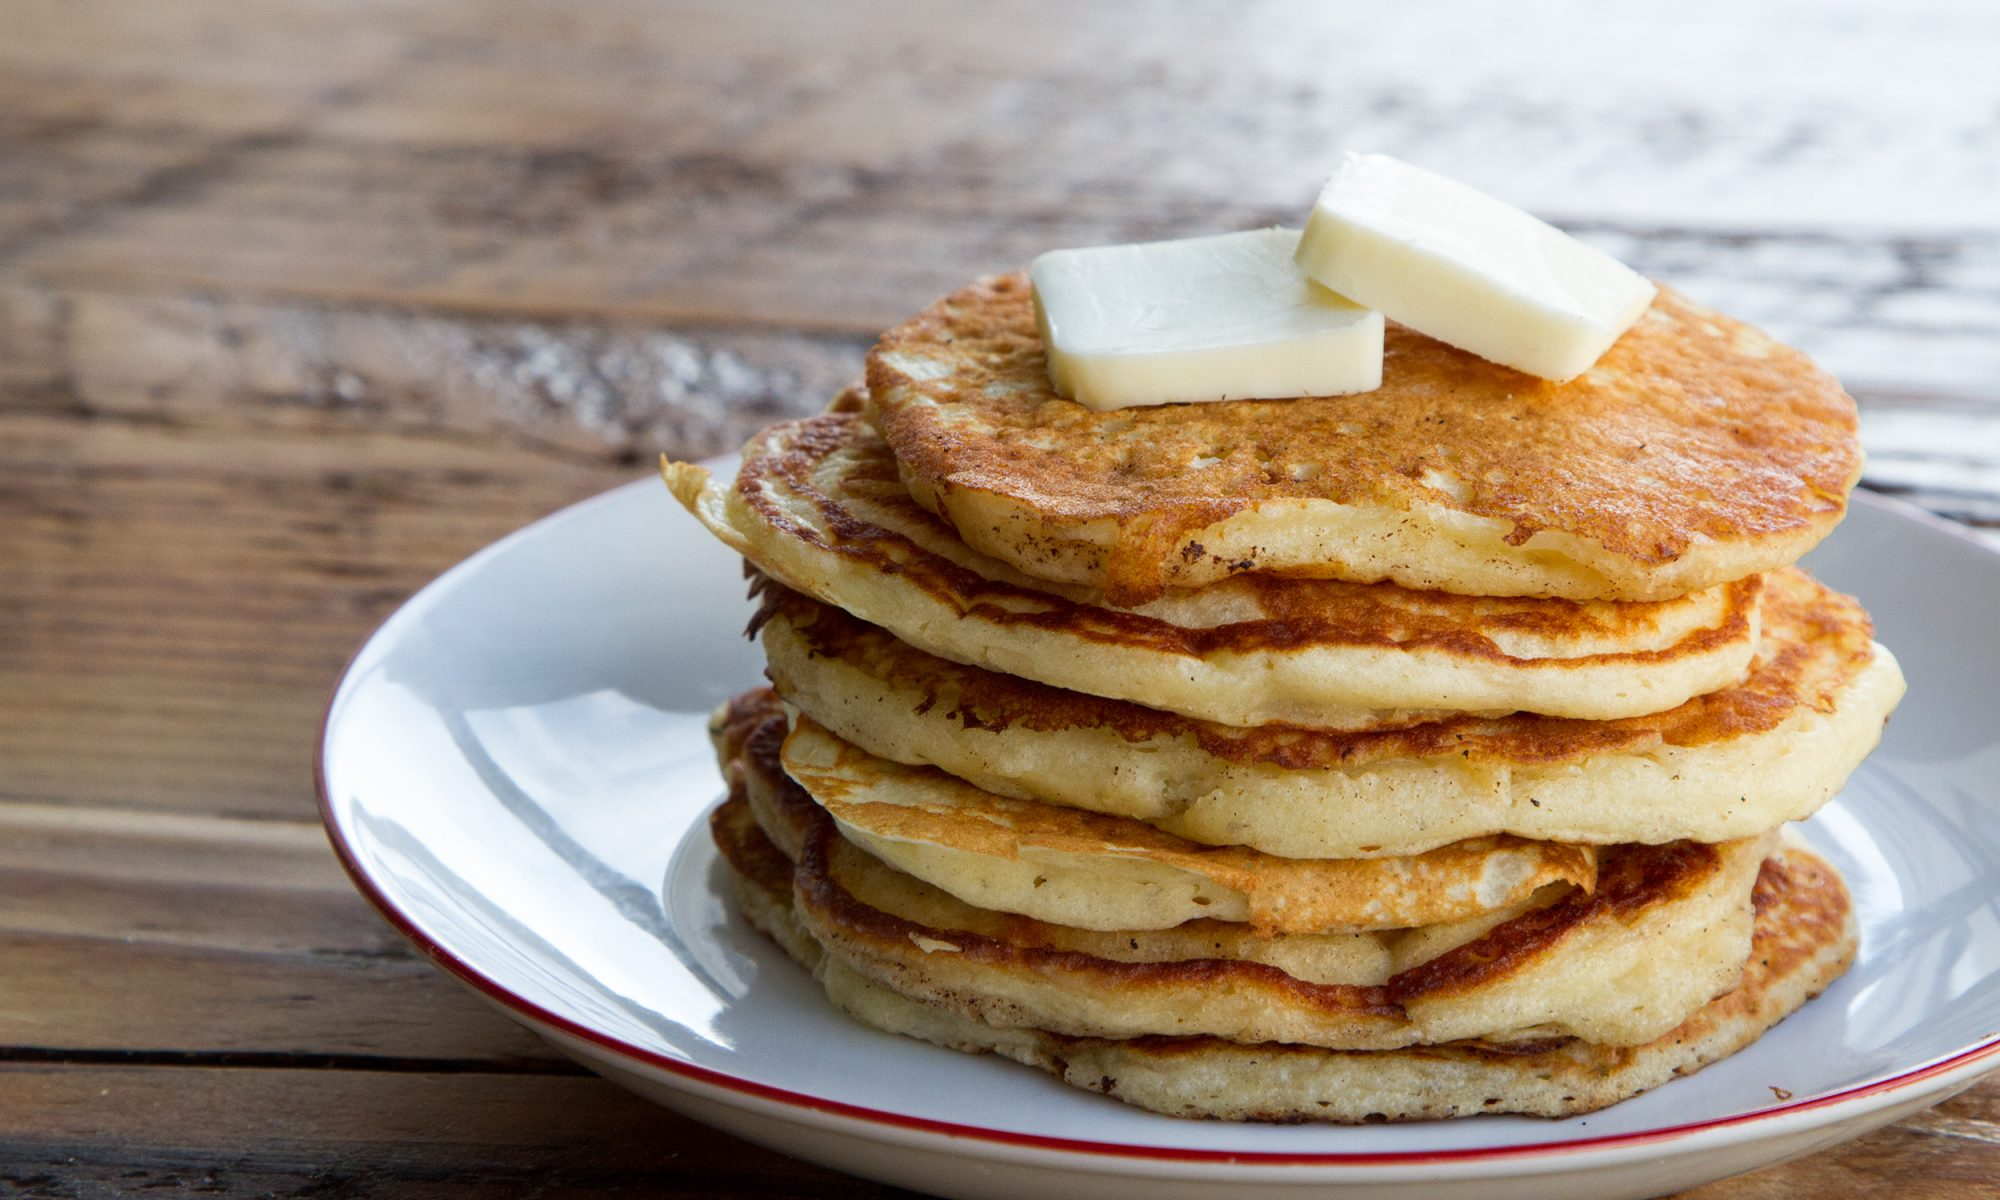 EC: Make Extra-Golden-Brown Pancakes with This Secret Ingredient